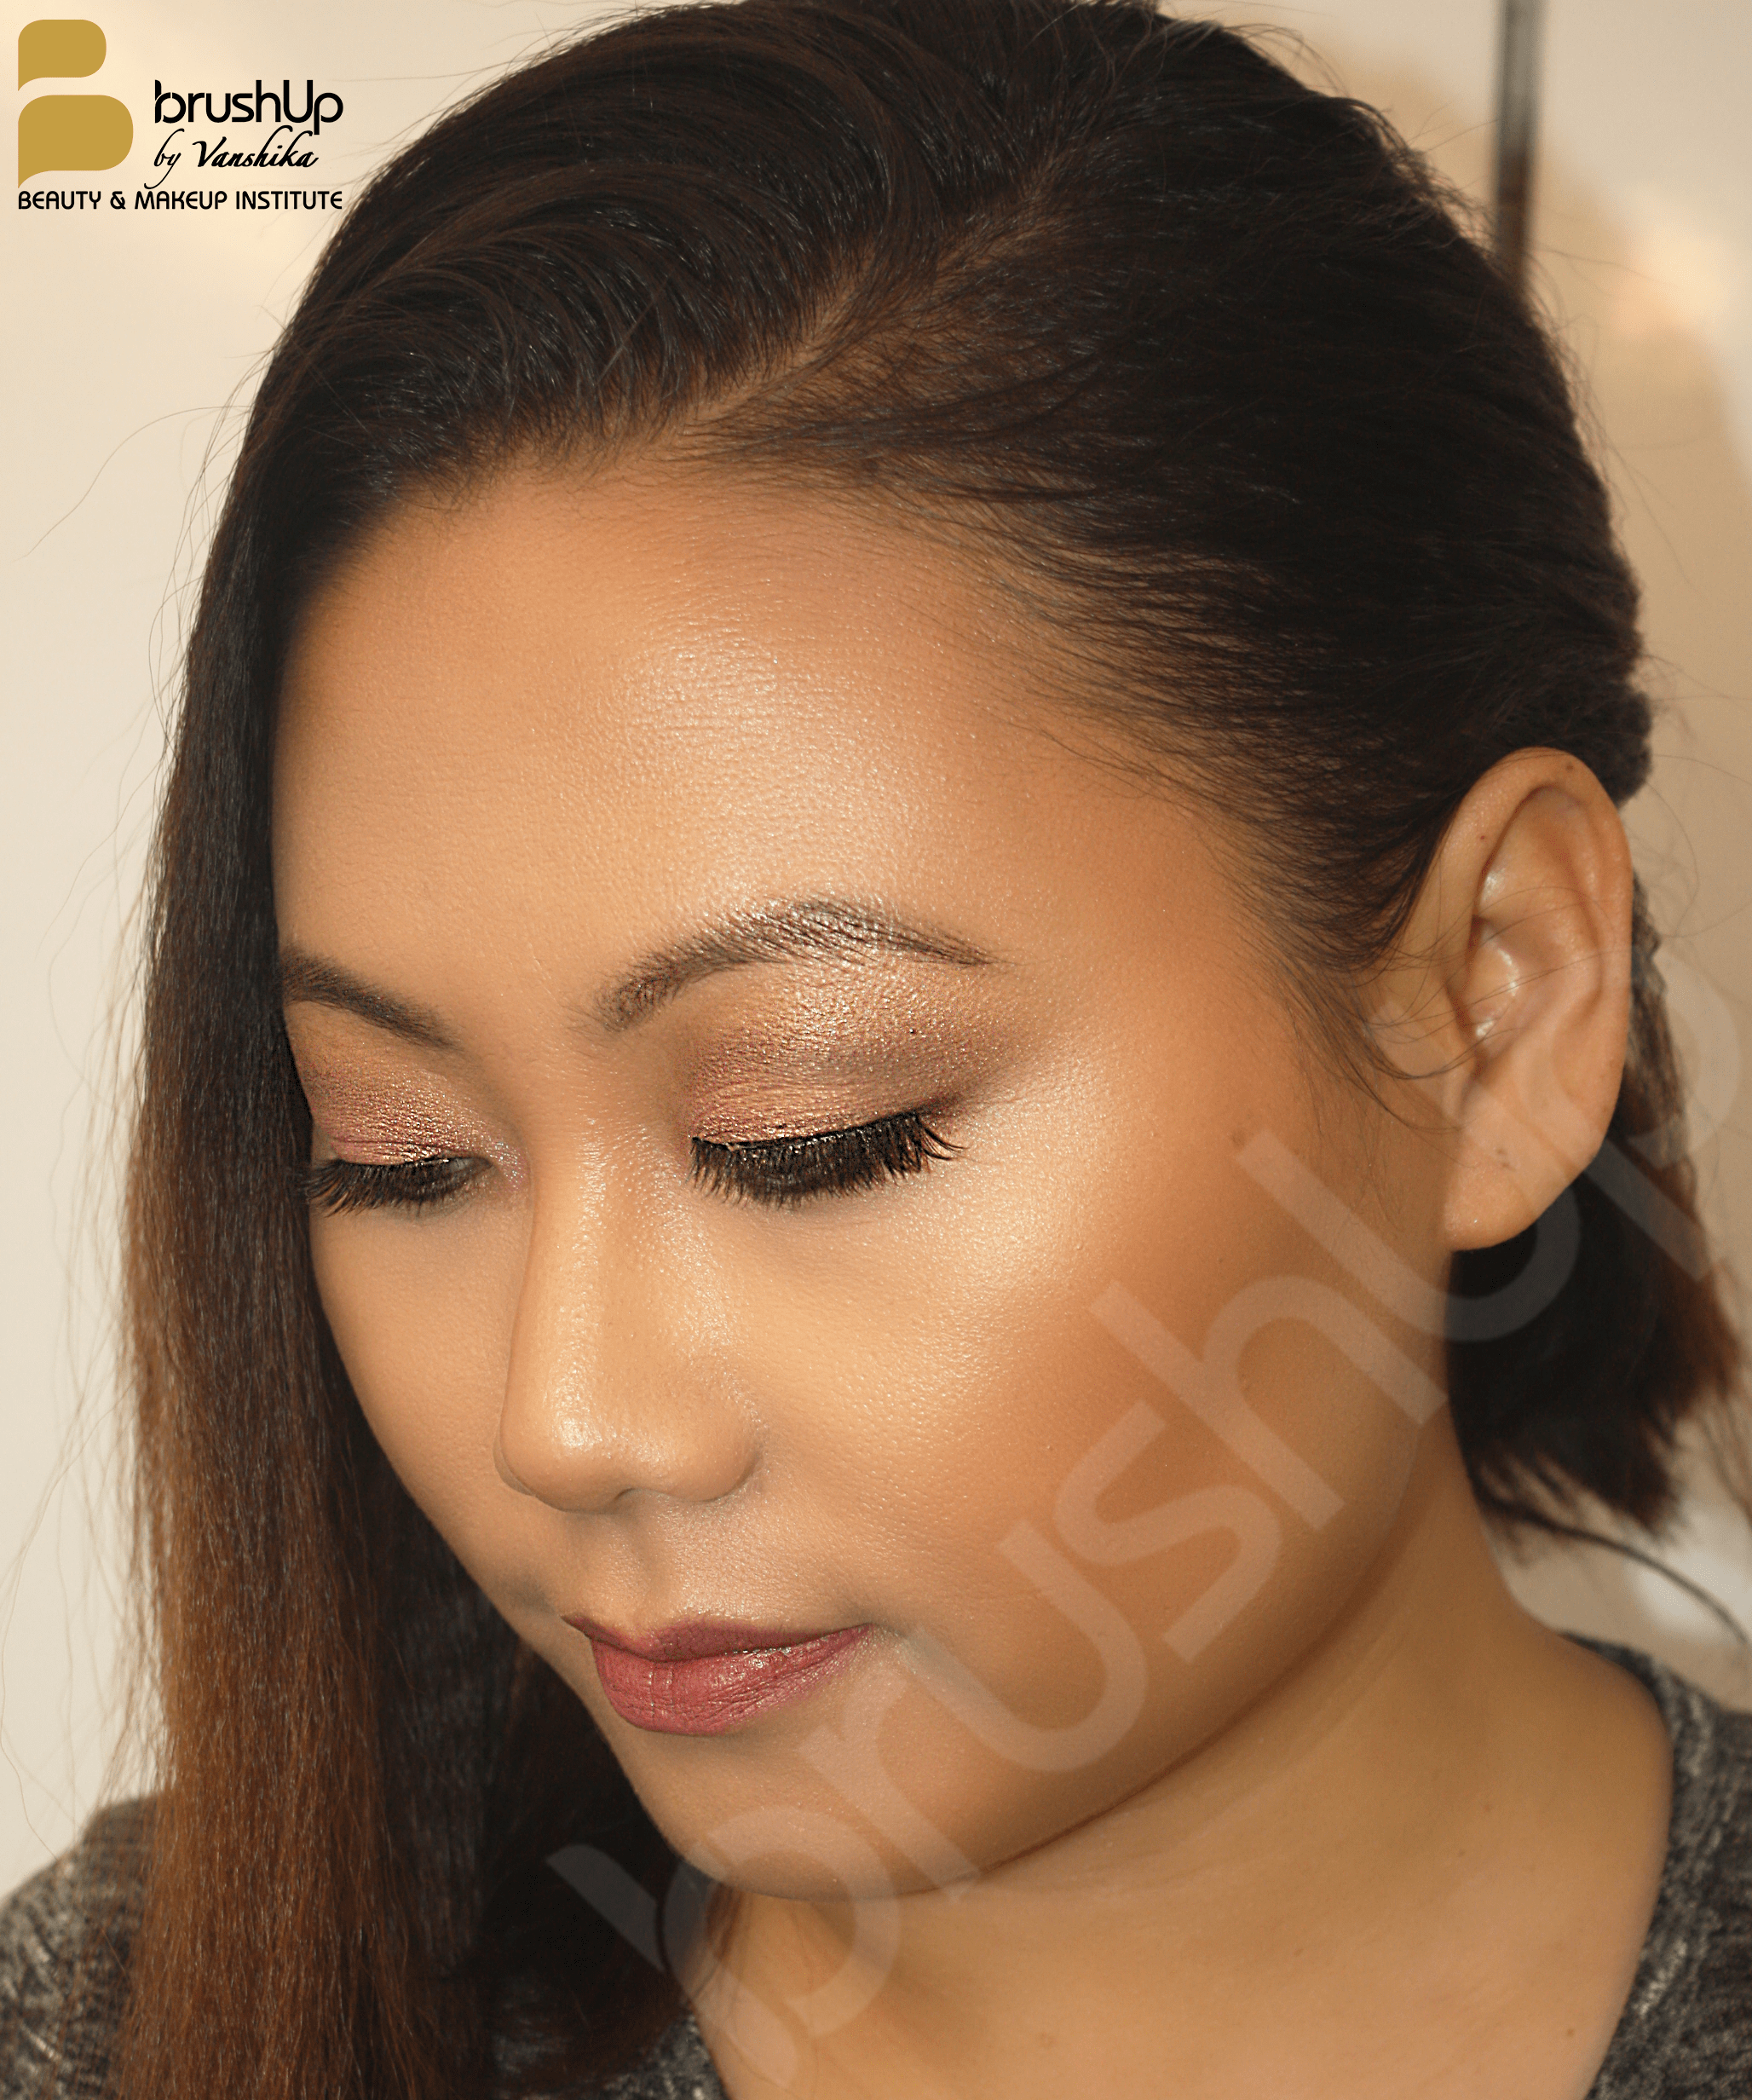 Makeup Artist Courses in Delhi NCR, Gurgaon BrushUp By